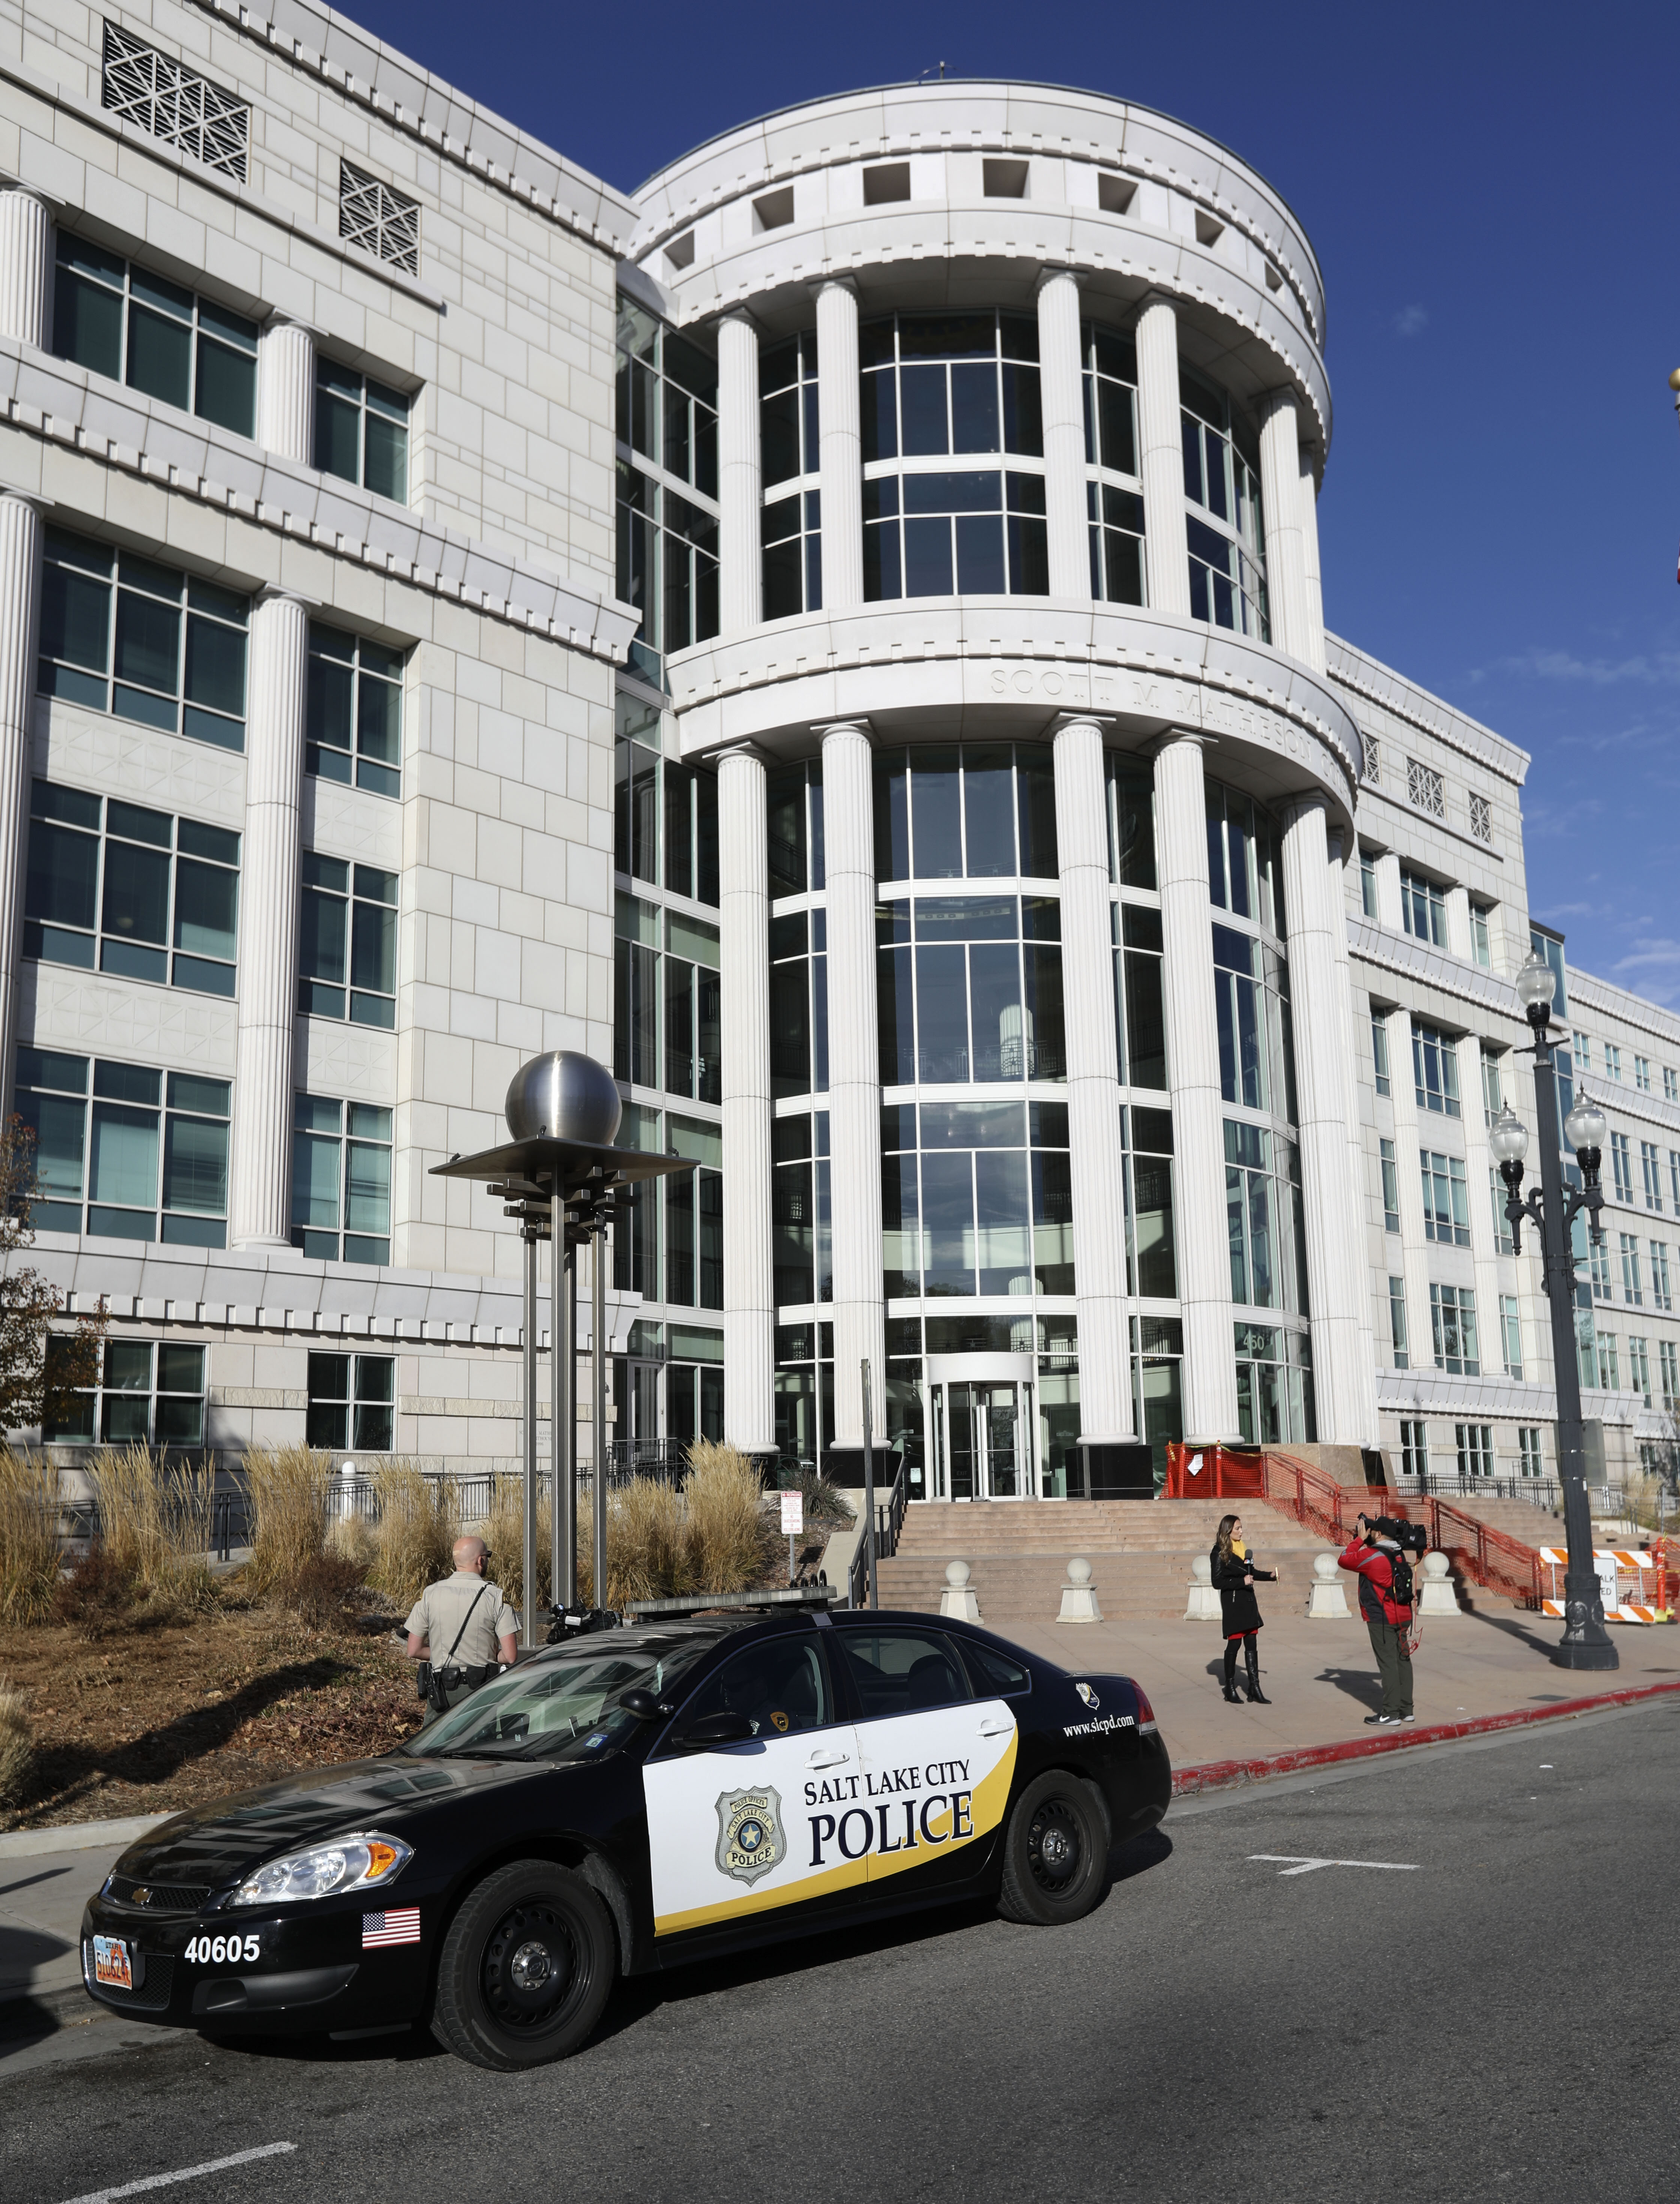 A Salt Lake City police vehicle is seen at the Matheson Courthouse in Salt Lake City after a wounded man entered the building on Friday, Nov. 15, 2019.